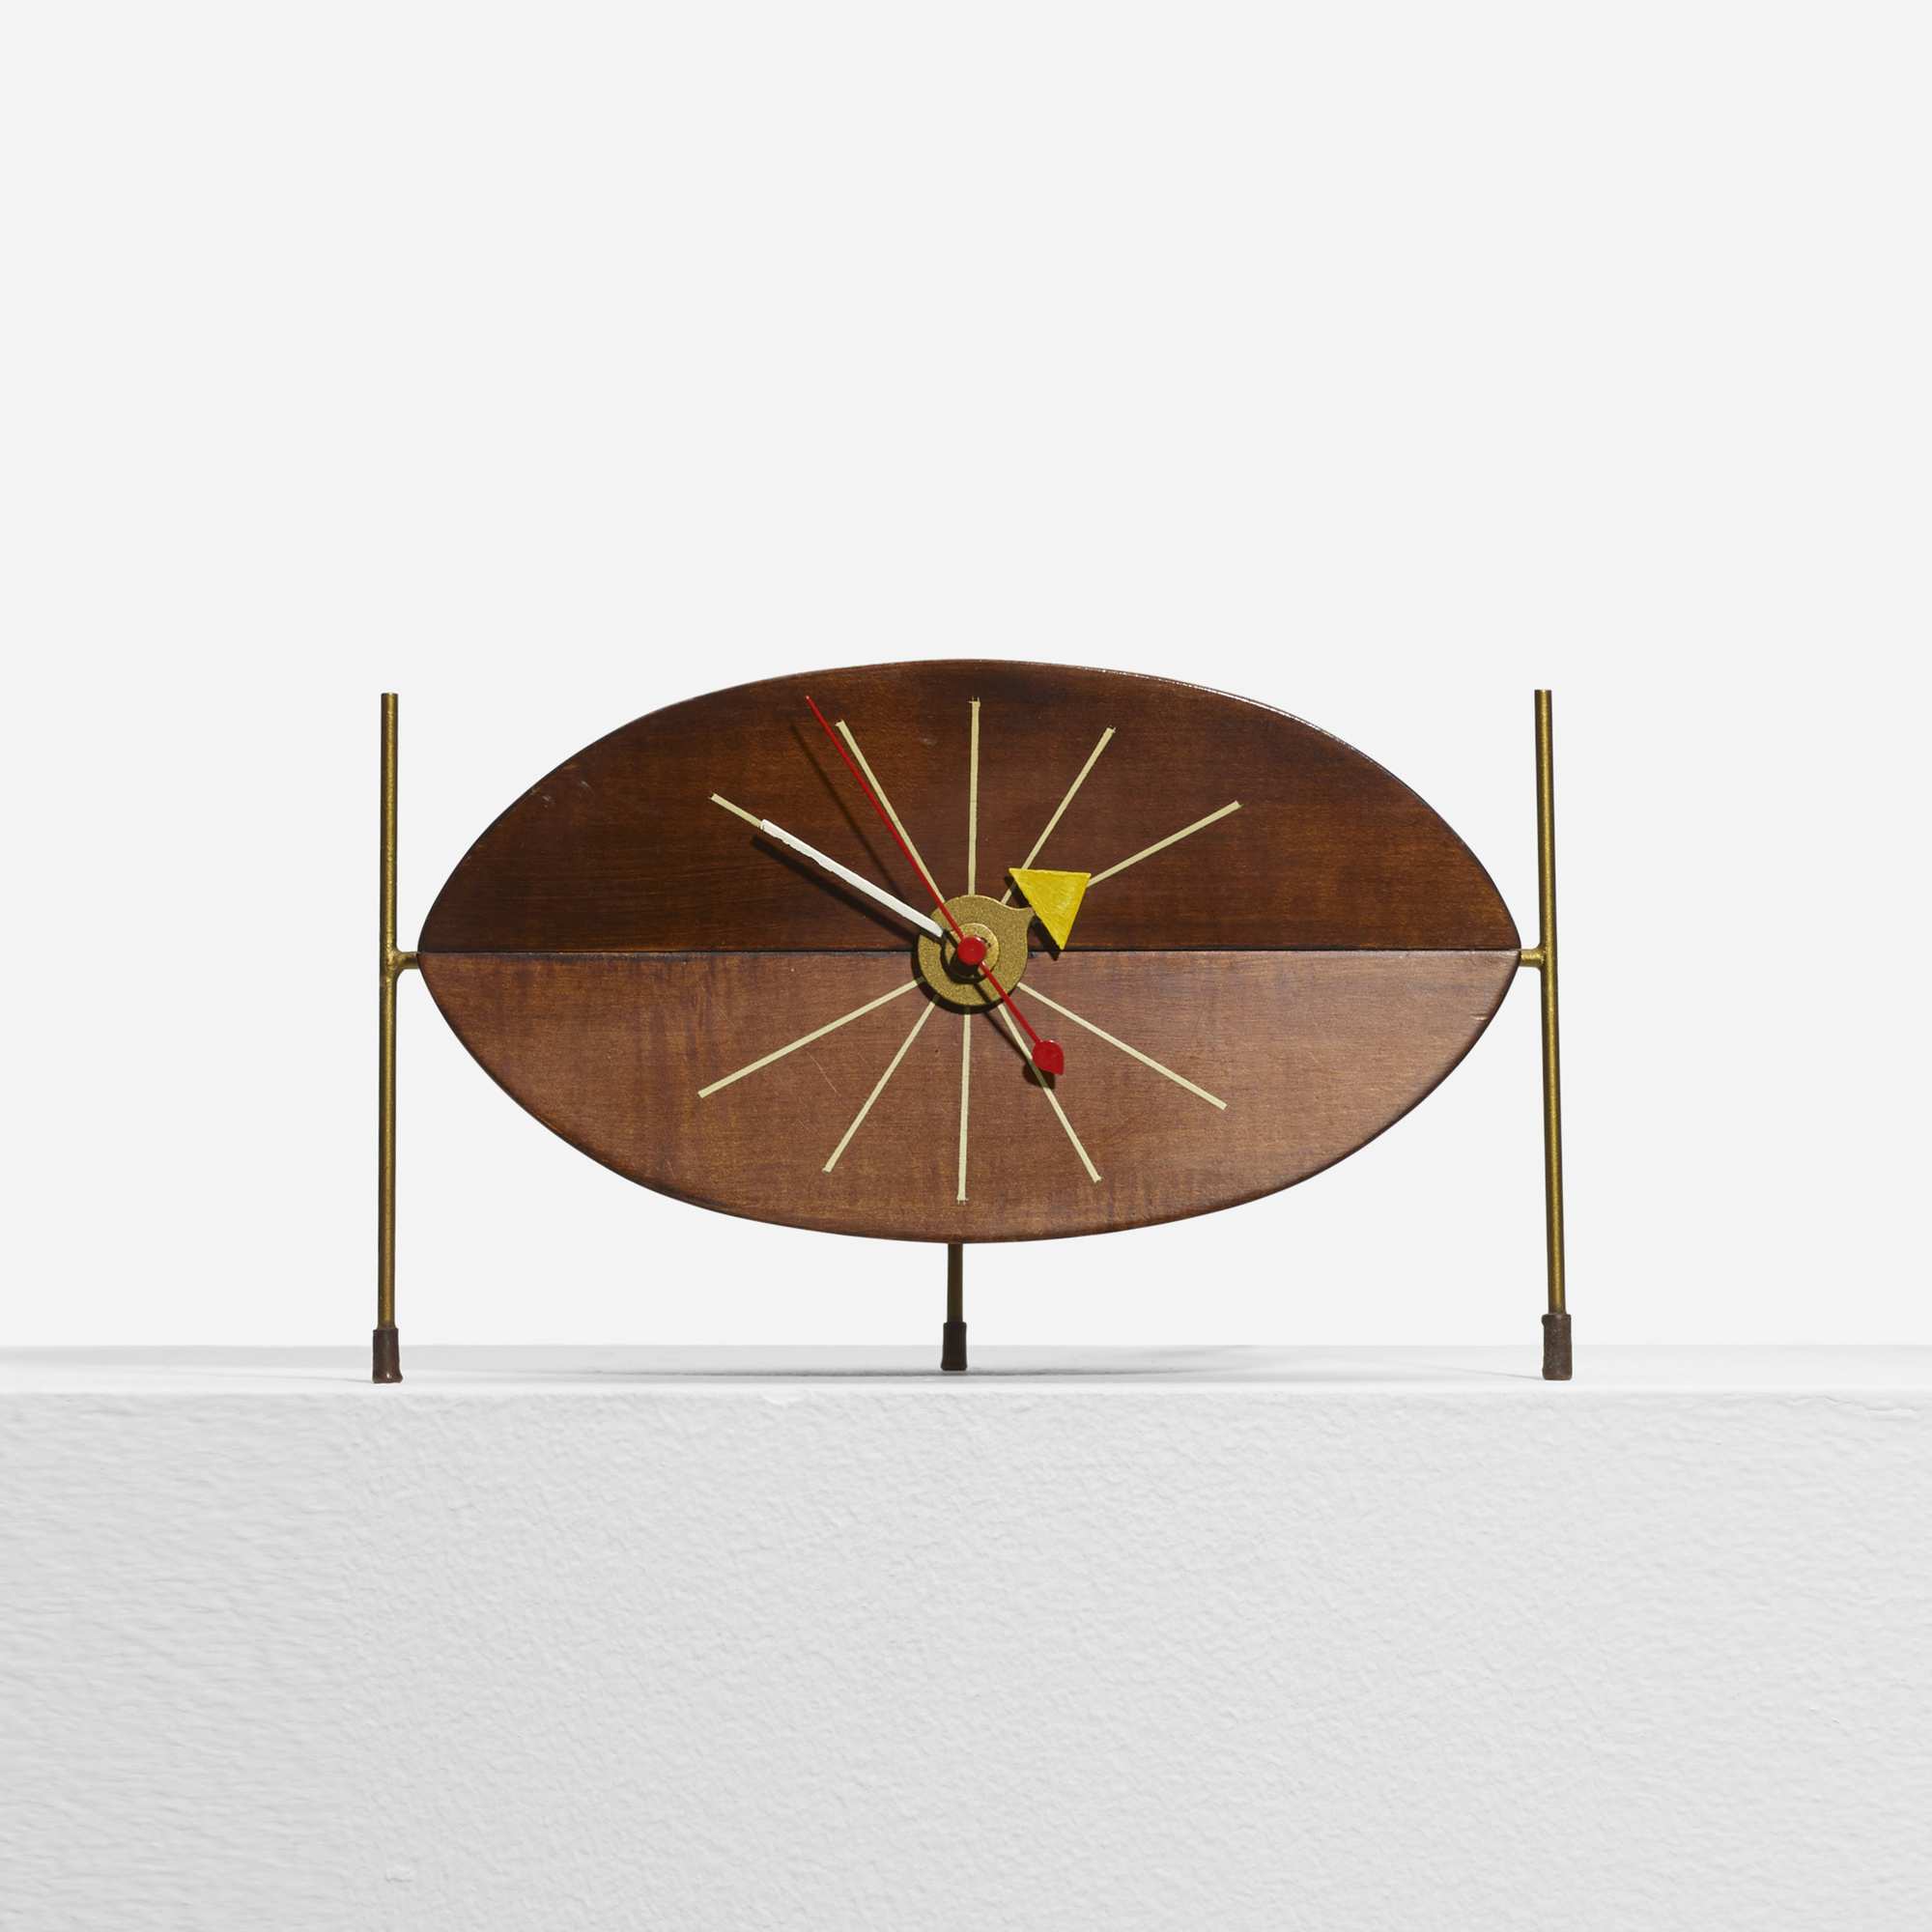 340: George Nelson & Associates / Watermelon table clock, model 2219D (1 of 4)